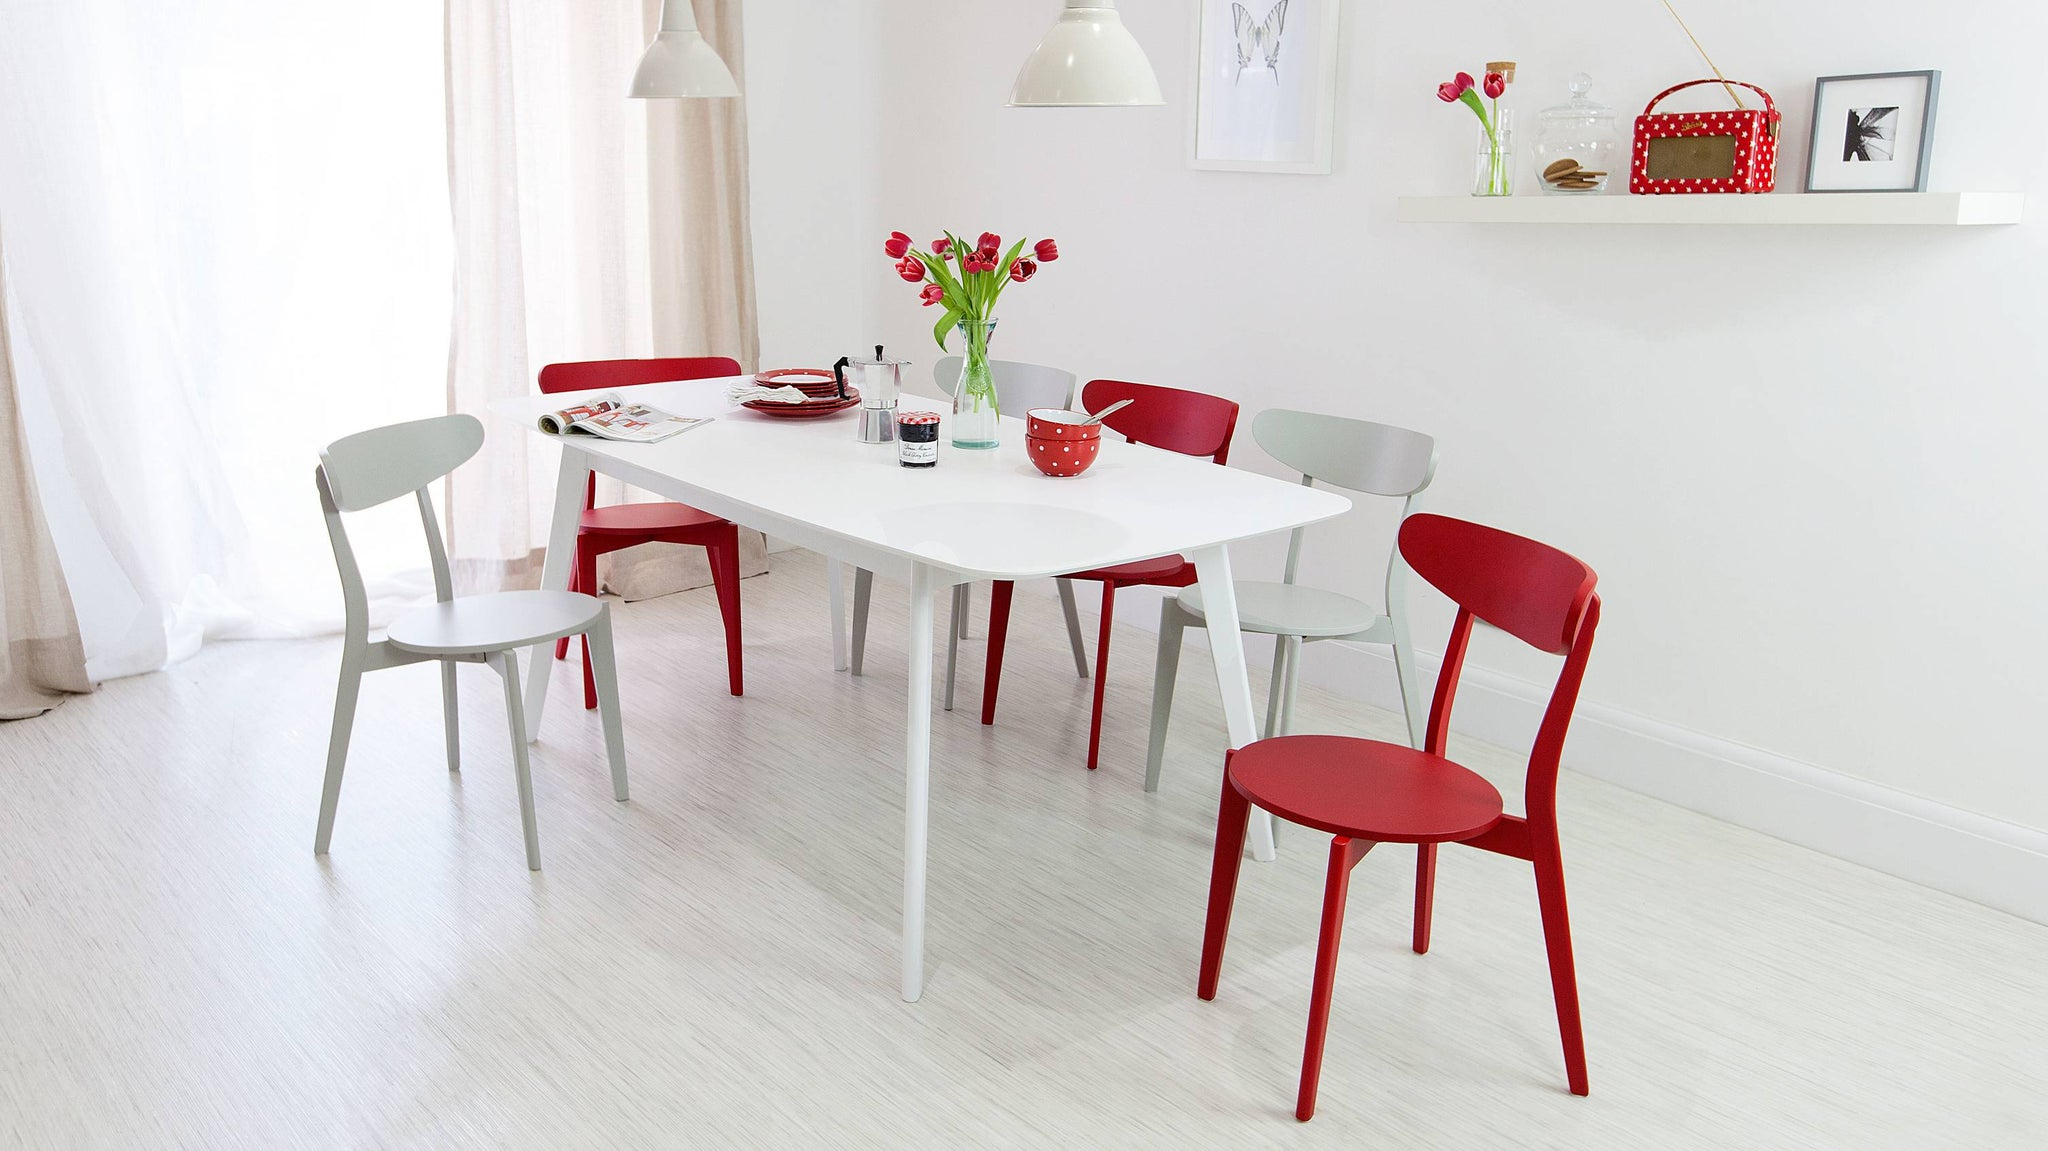 Colourful dining room chairs